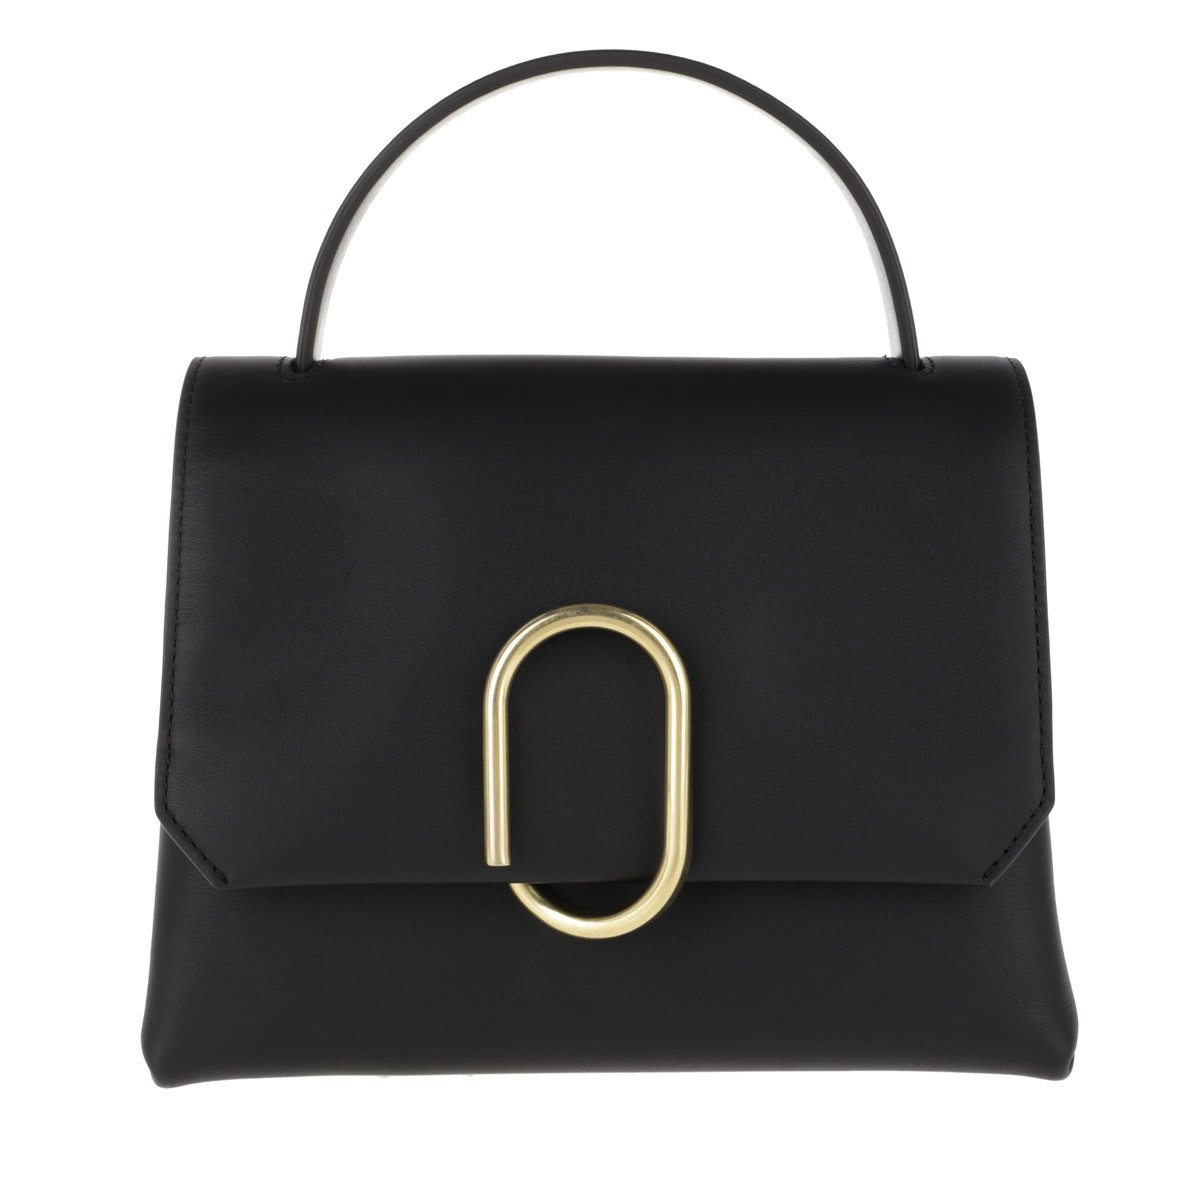 3.1 Phillip Lim Satchel Bag - Alix Mini Top Handle Satchel Black Brass - in schwarz - für Damen